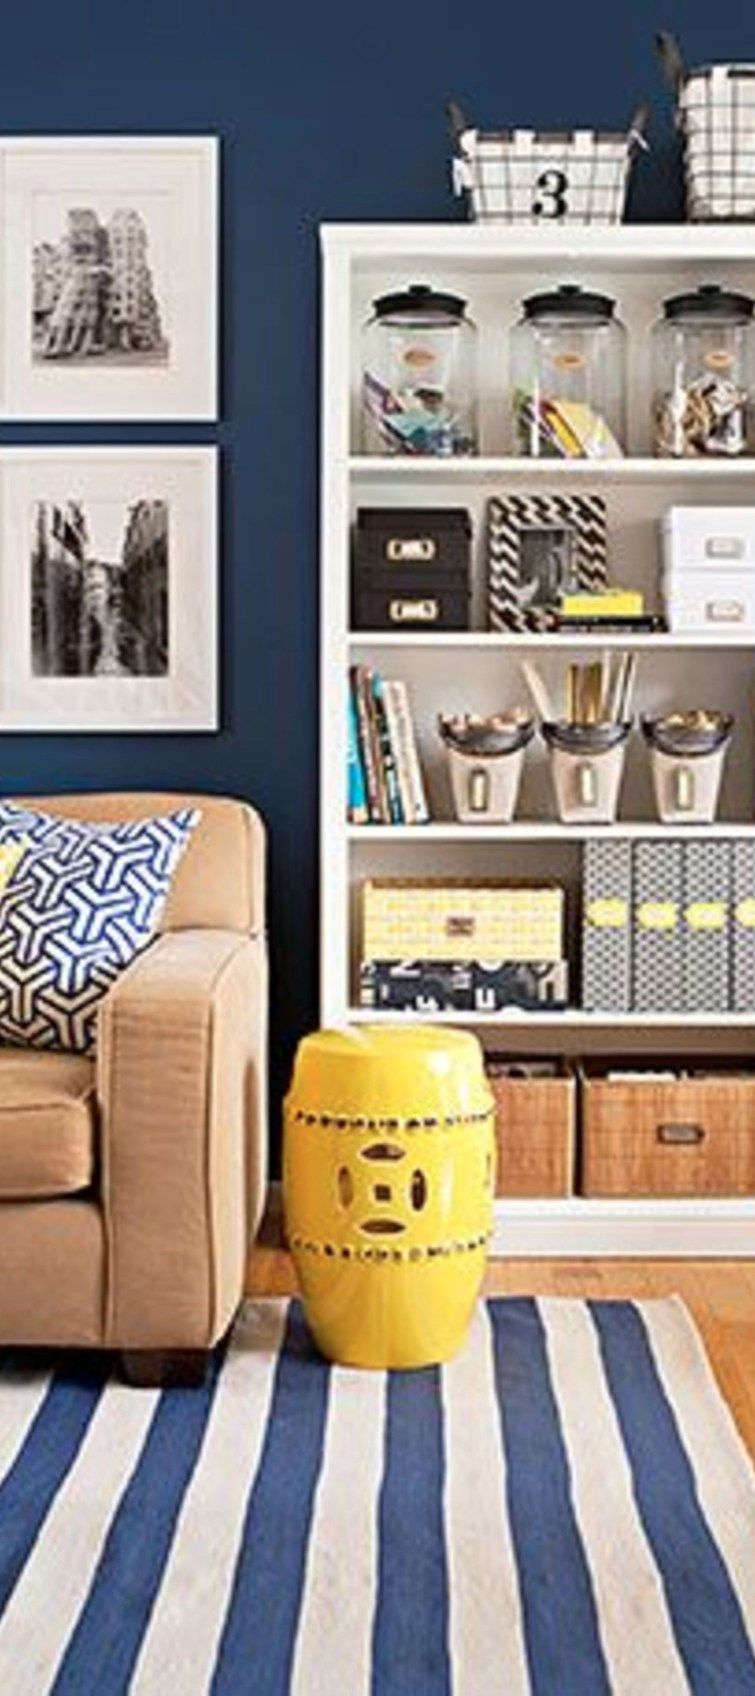 6 Simple Rules Of Decluttering Your Life To Live A Clutter Free Life For Good Decluttering